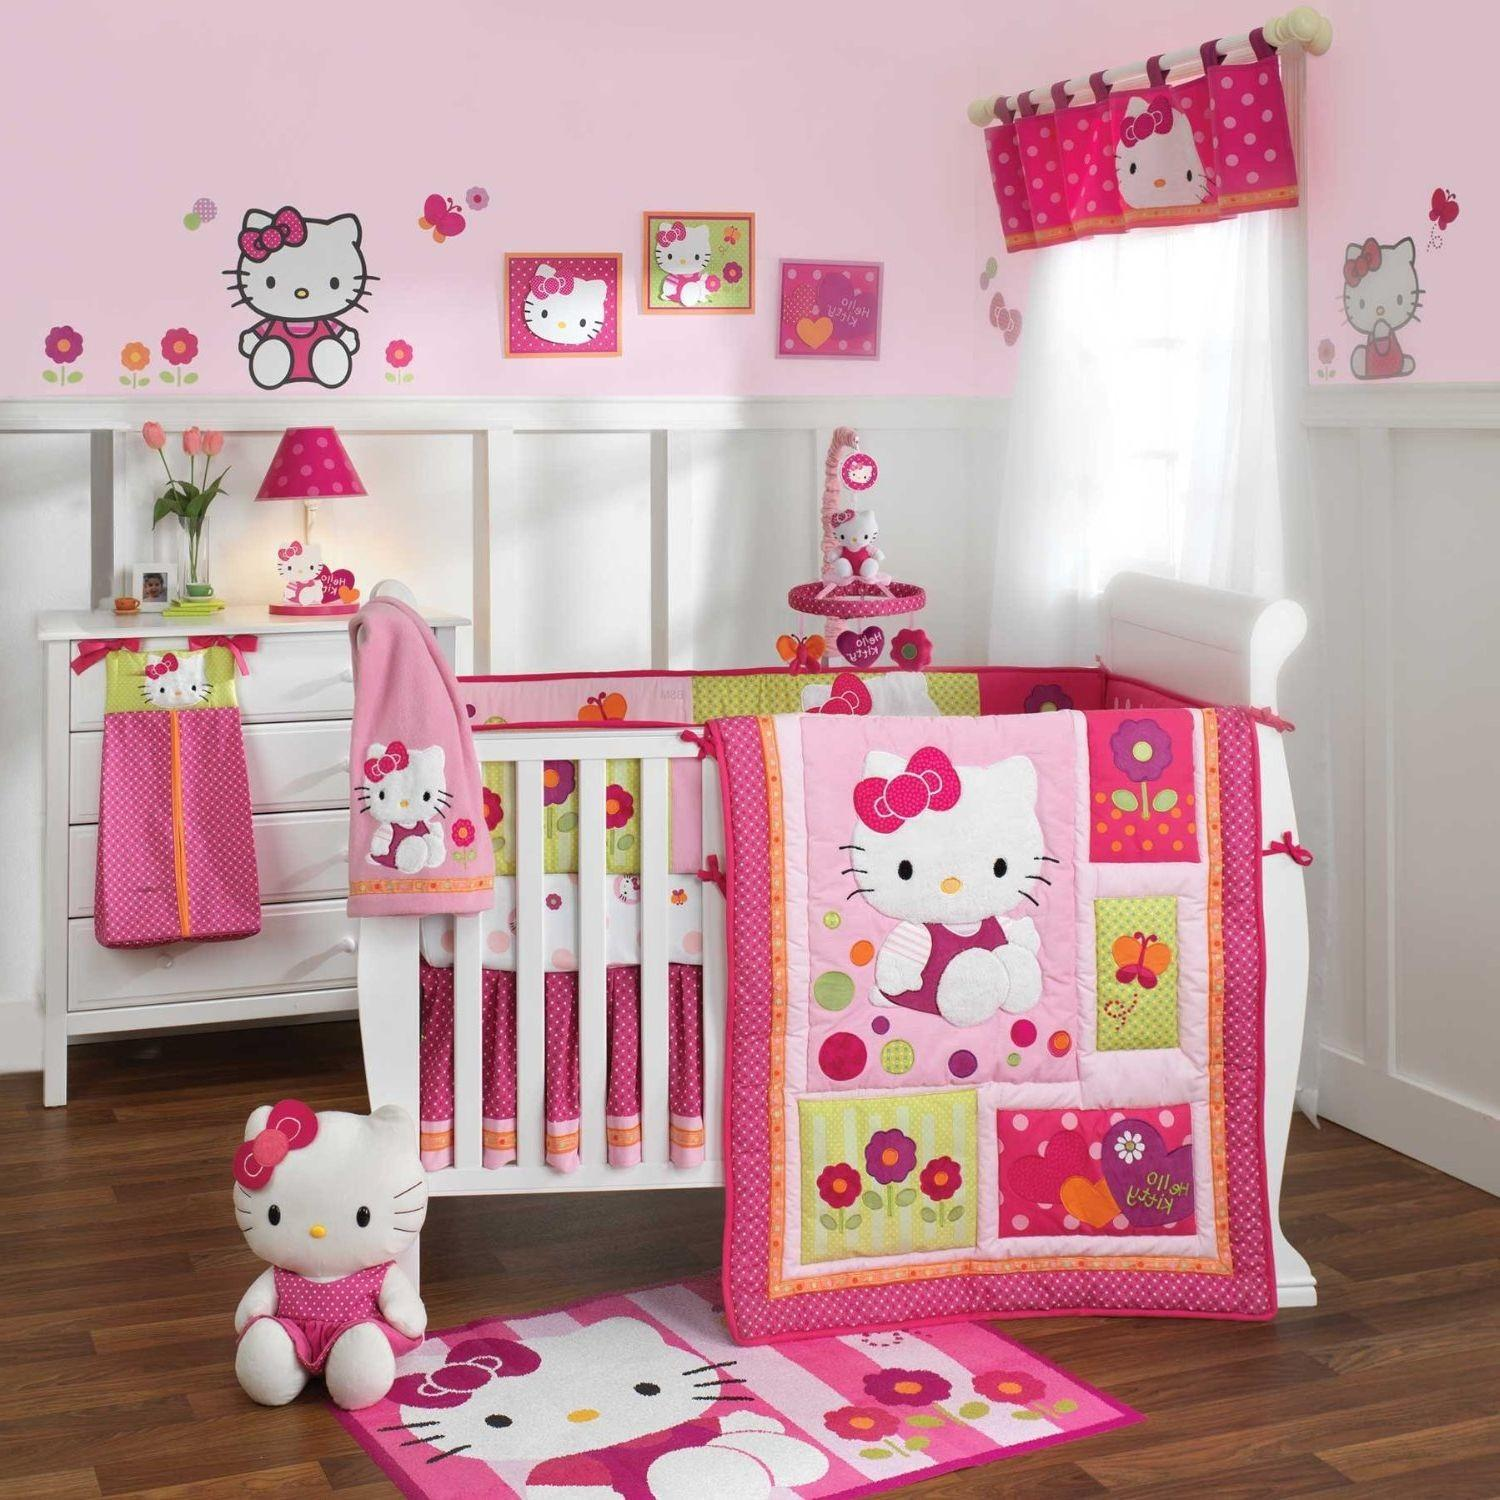 Design Ideas Baby Girl Room Pink Walls White